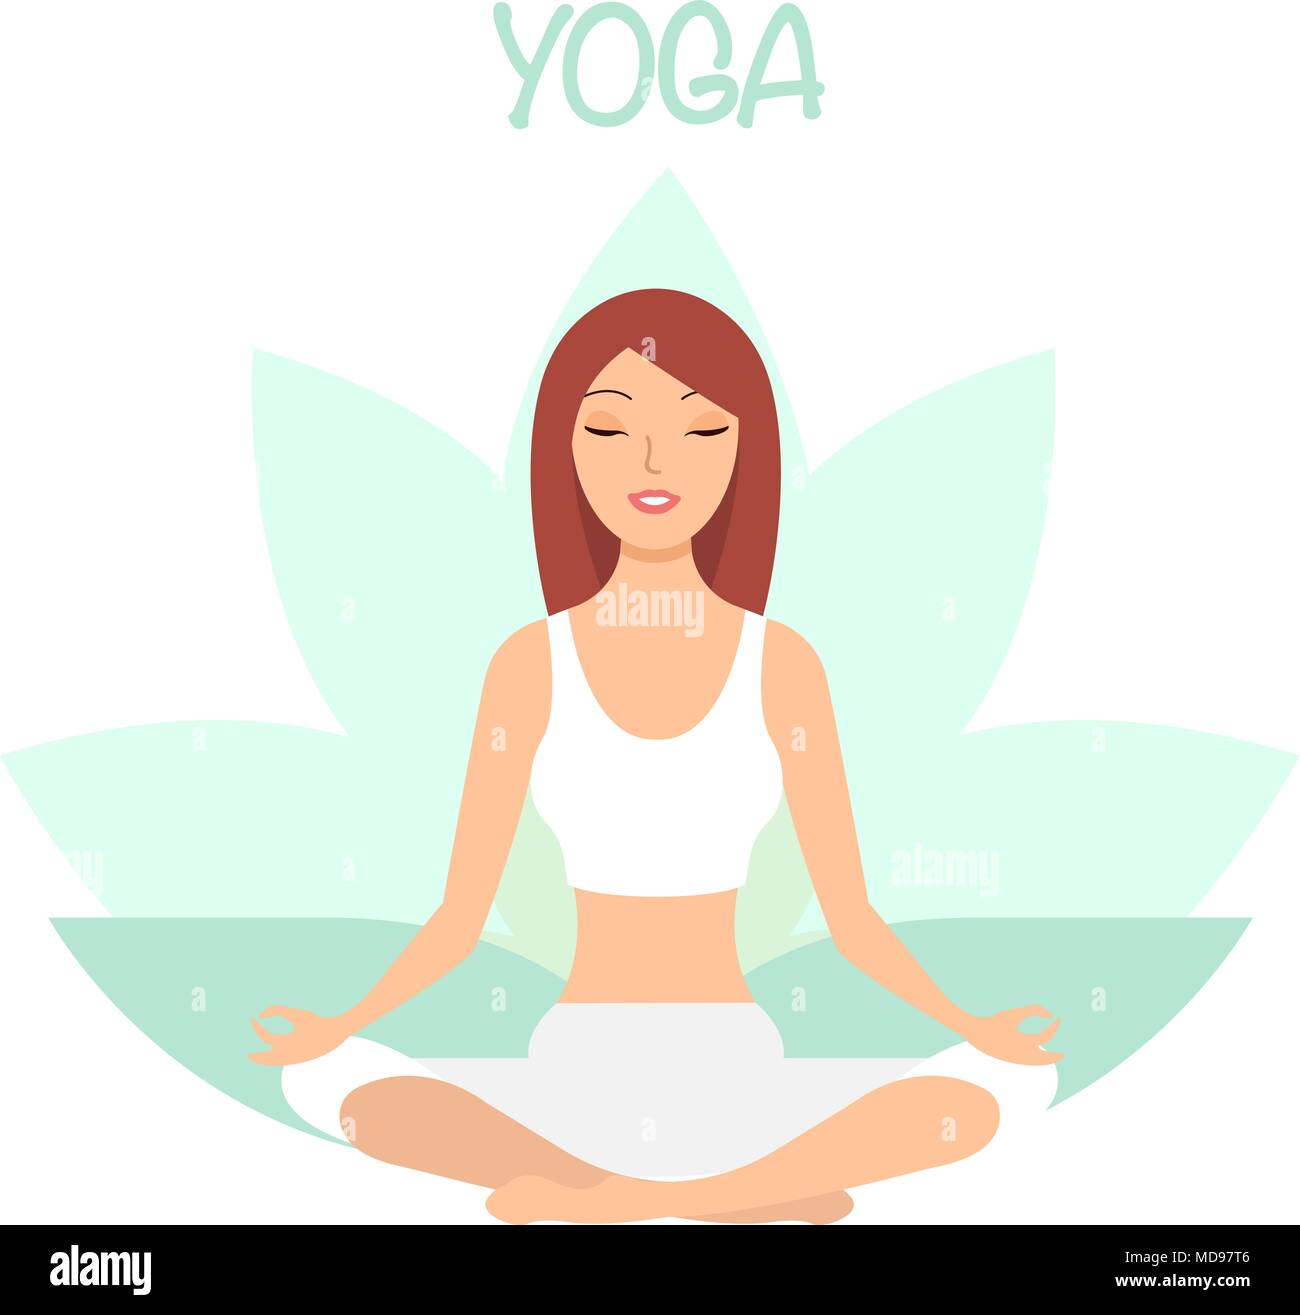 Yoga Cartoon High Resolution Stock Photography And Images Alamy